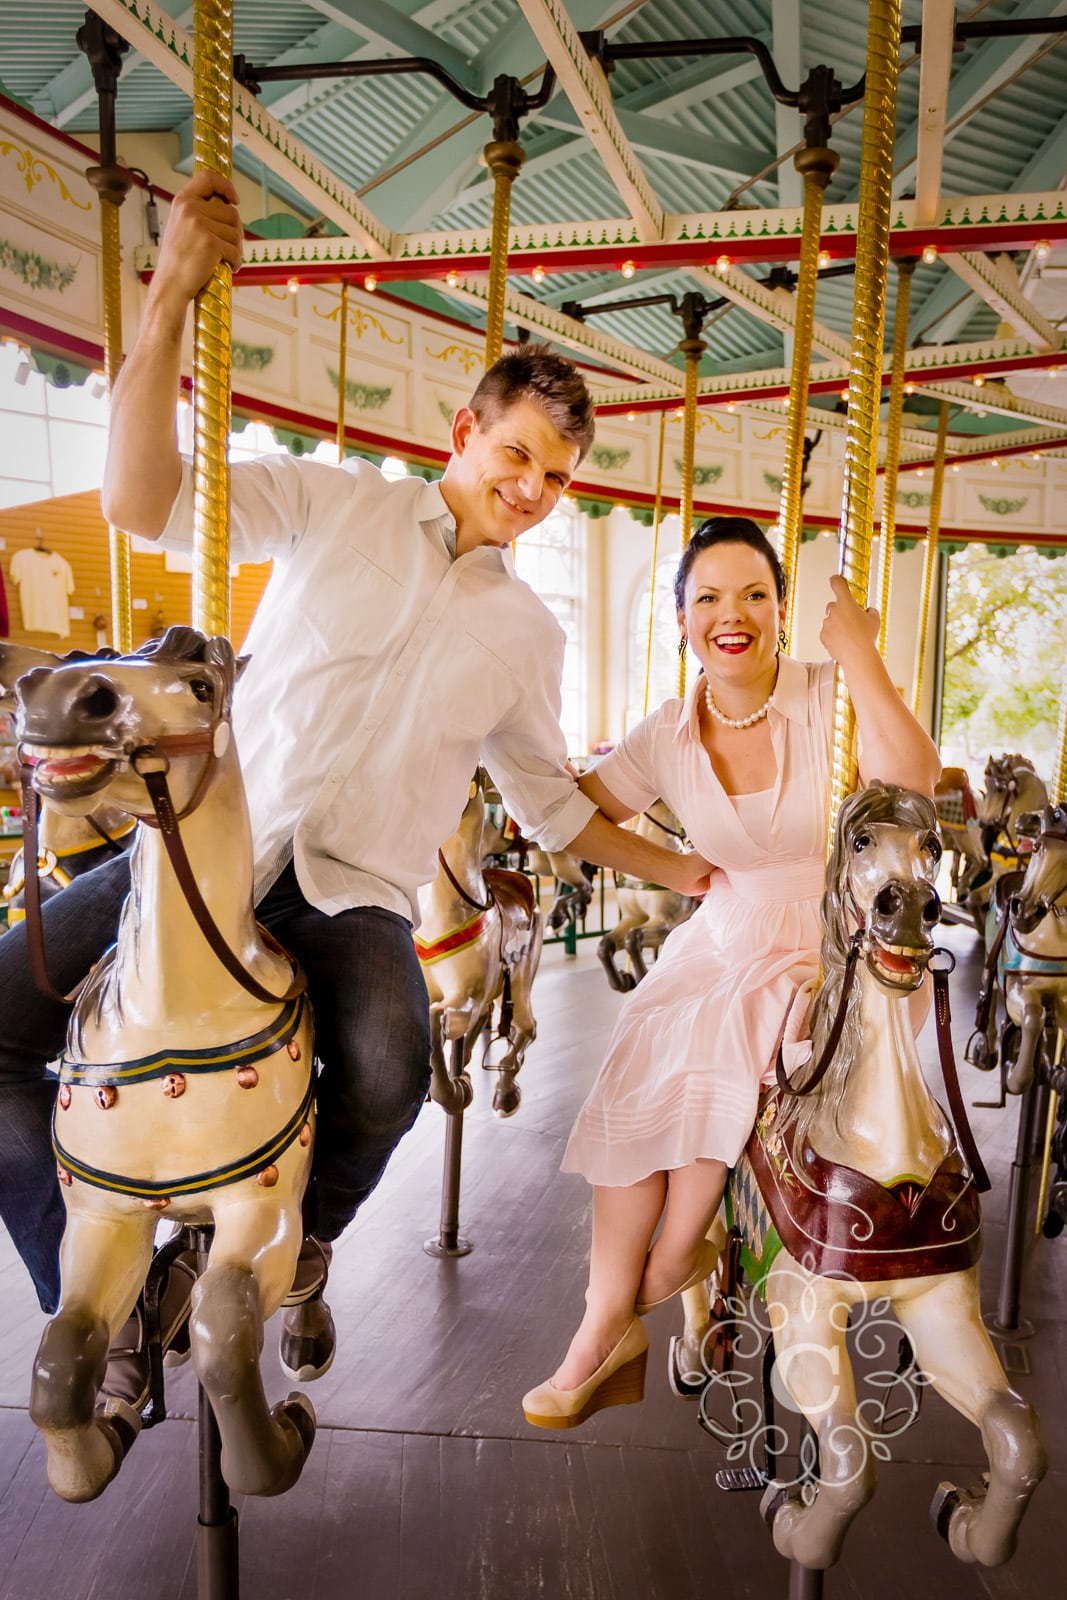 Amusement Park Engagement Session